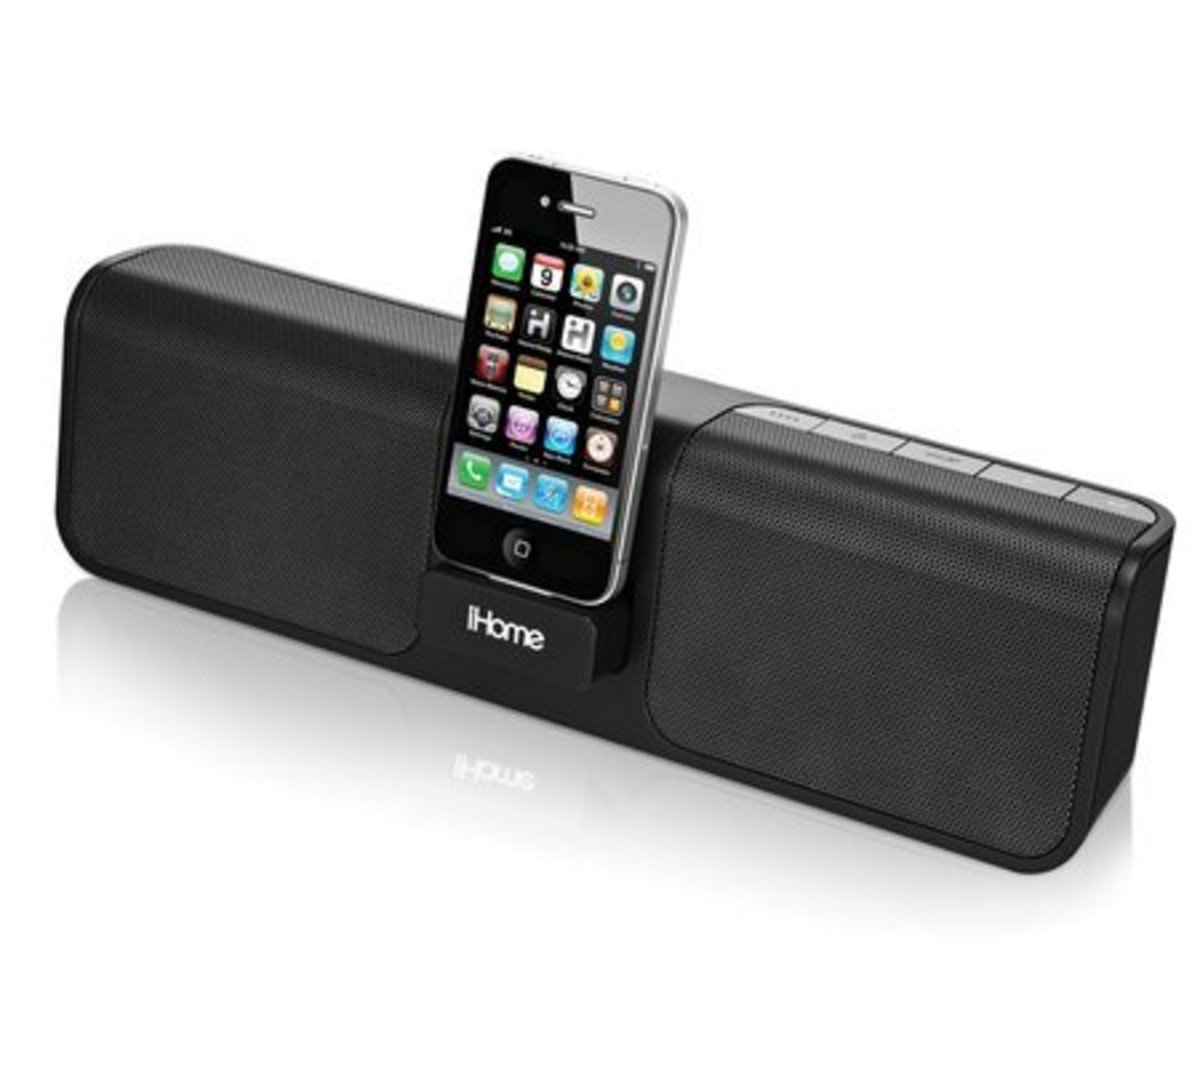 Older models of Apple devices may not play well with a newer iHome player.